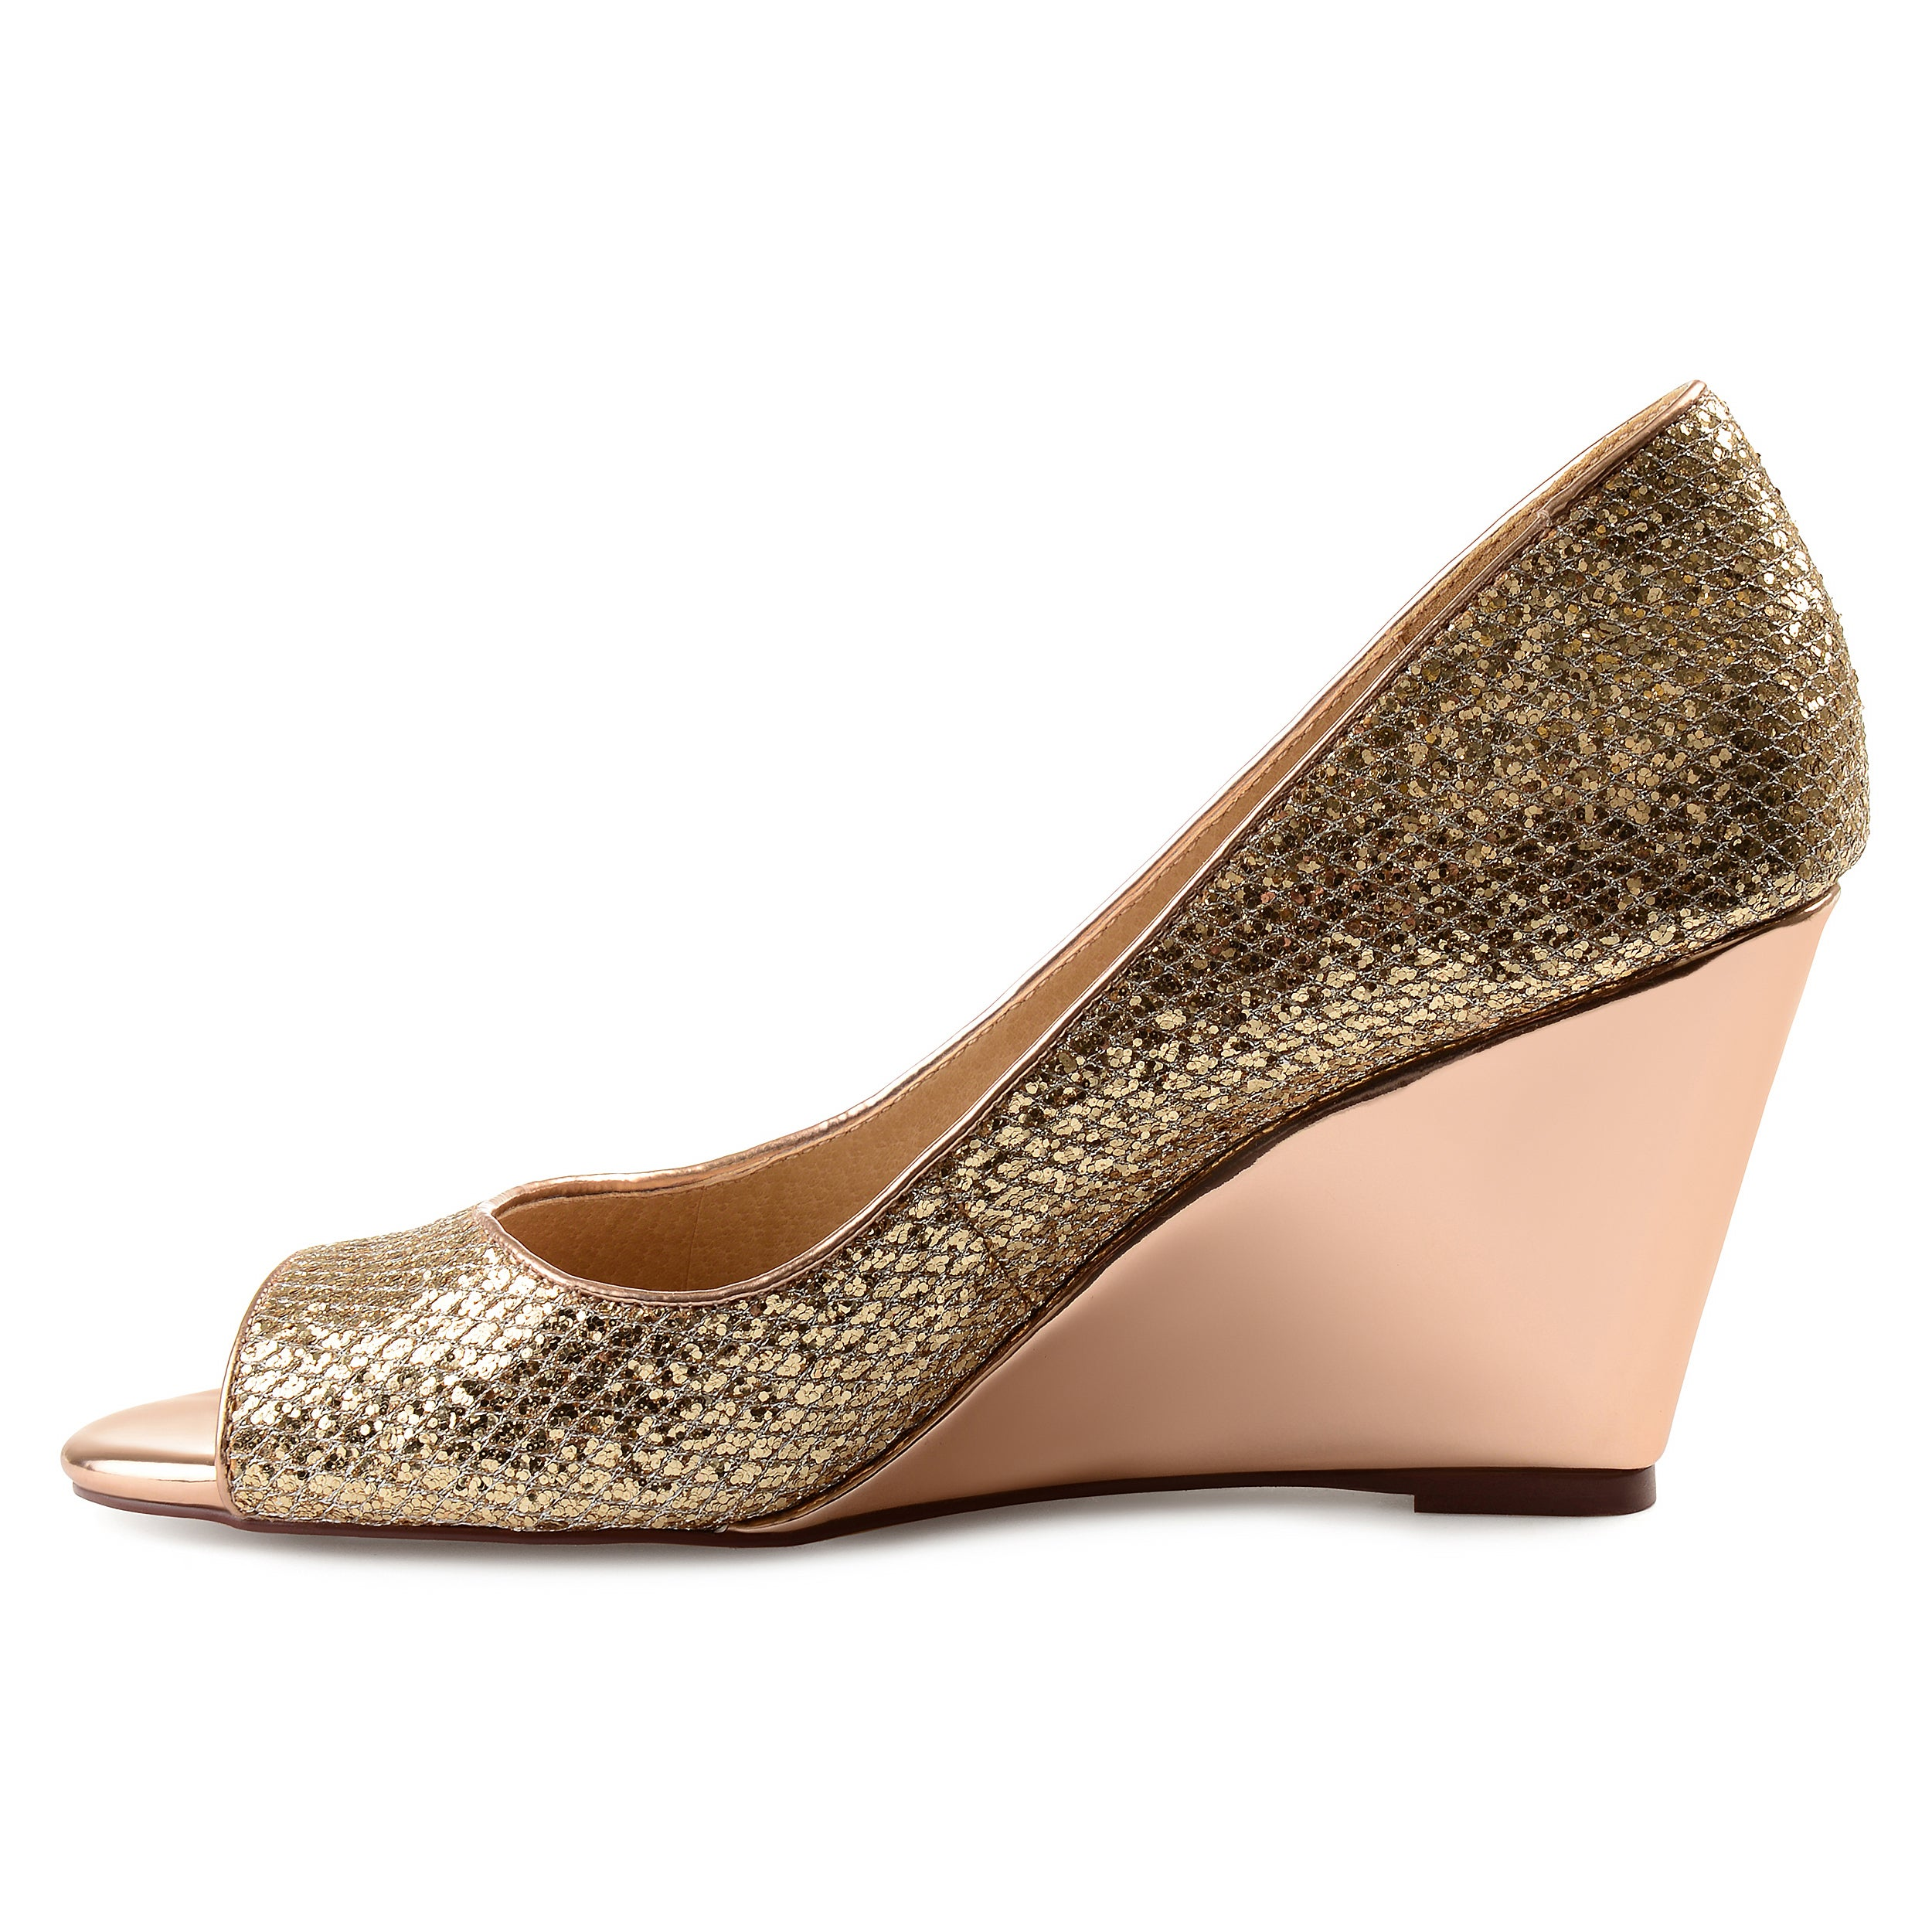 36fc8a4cb6223 Shop Journee Collection Women's 'Selma' Open-toe Metallic Glitter Wedges -  Free Shipping Today - Overstock - 18218144